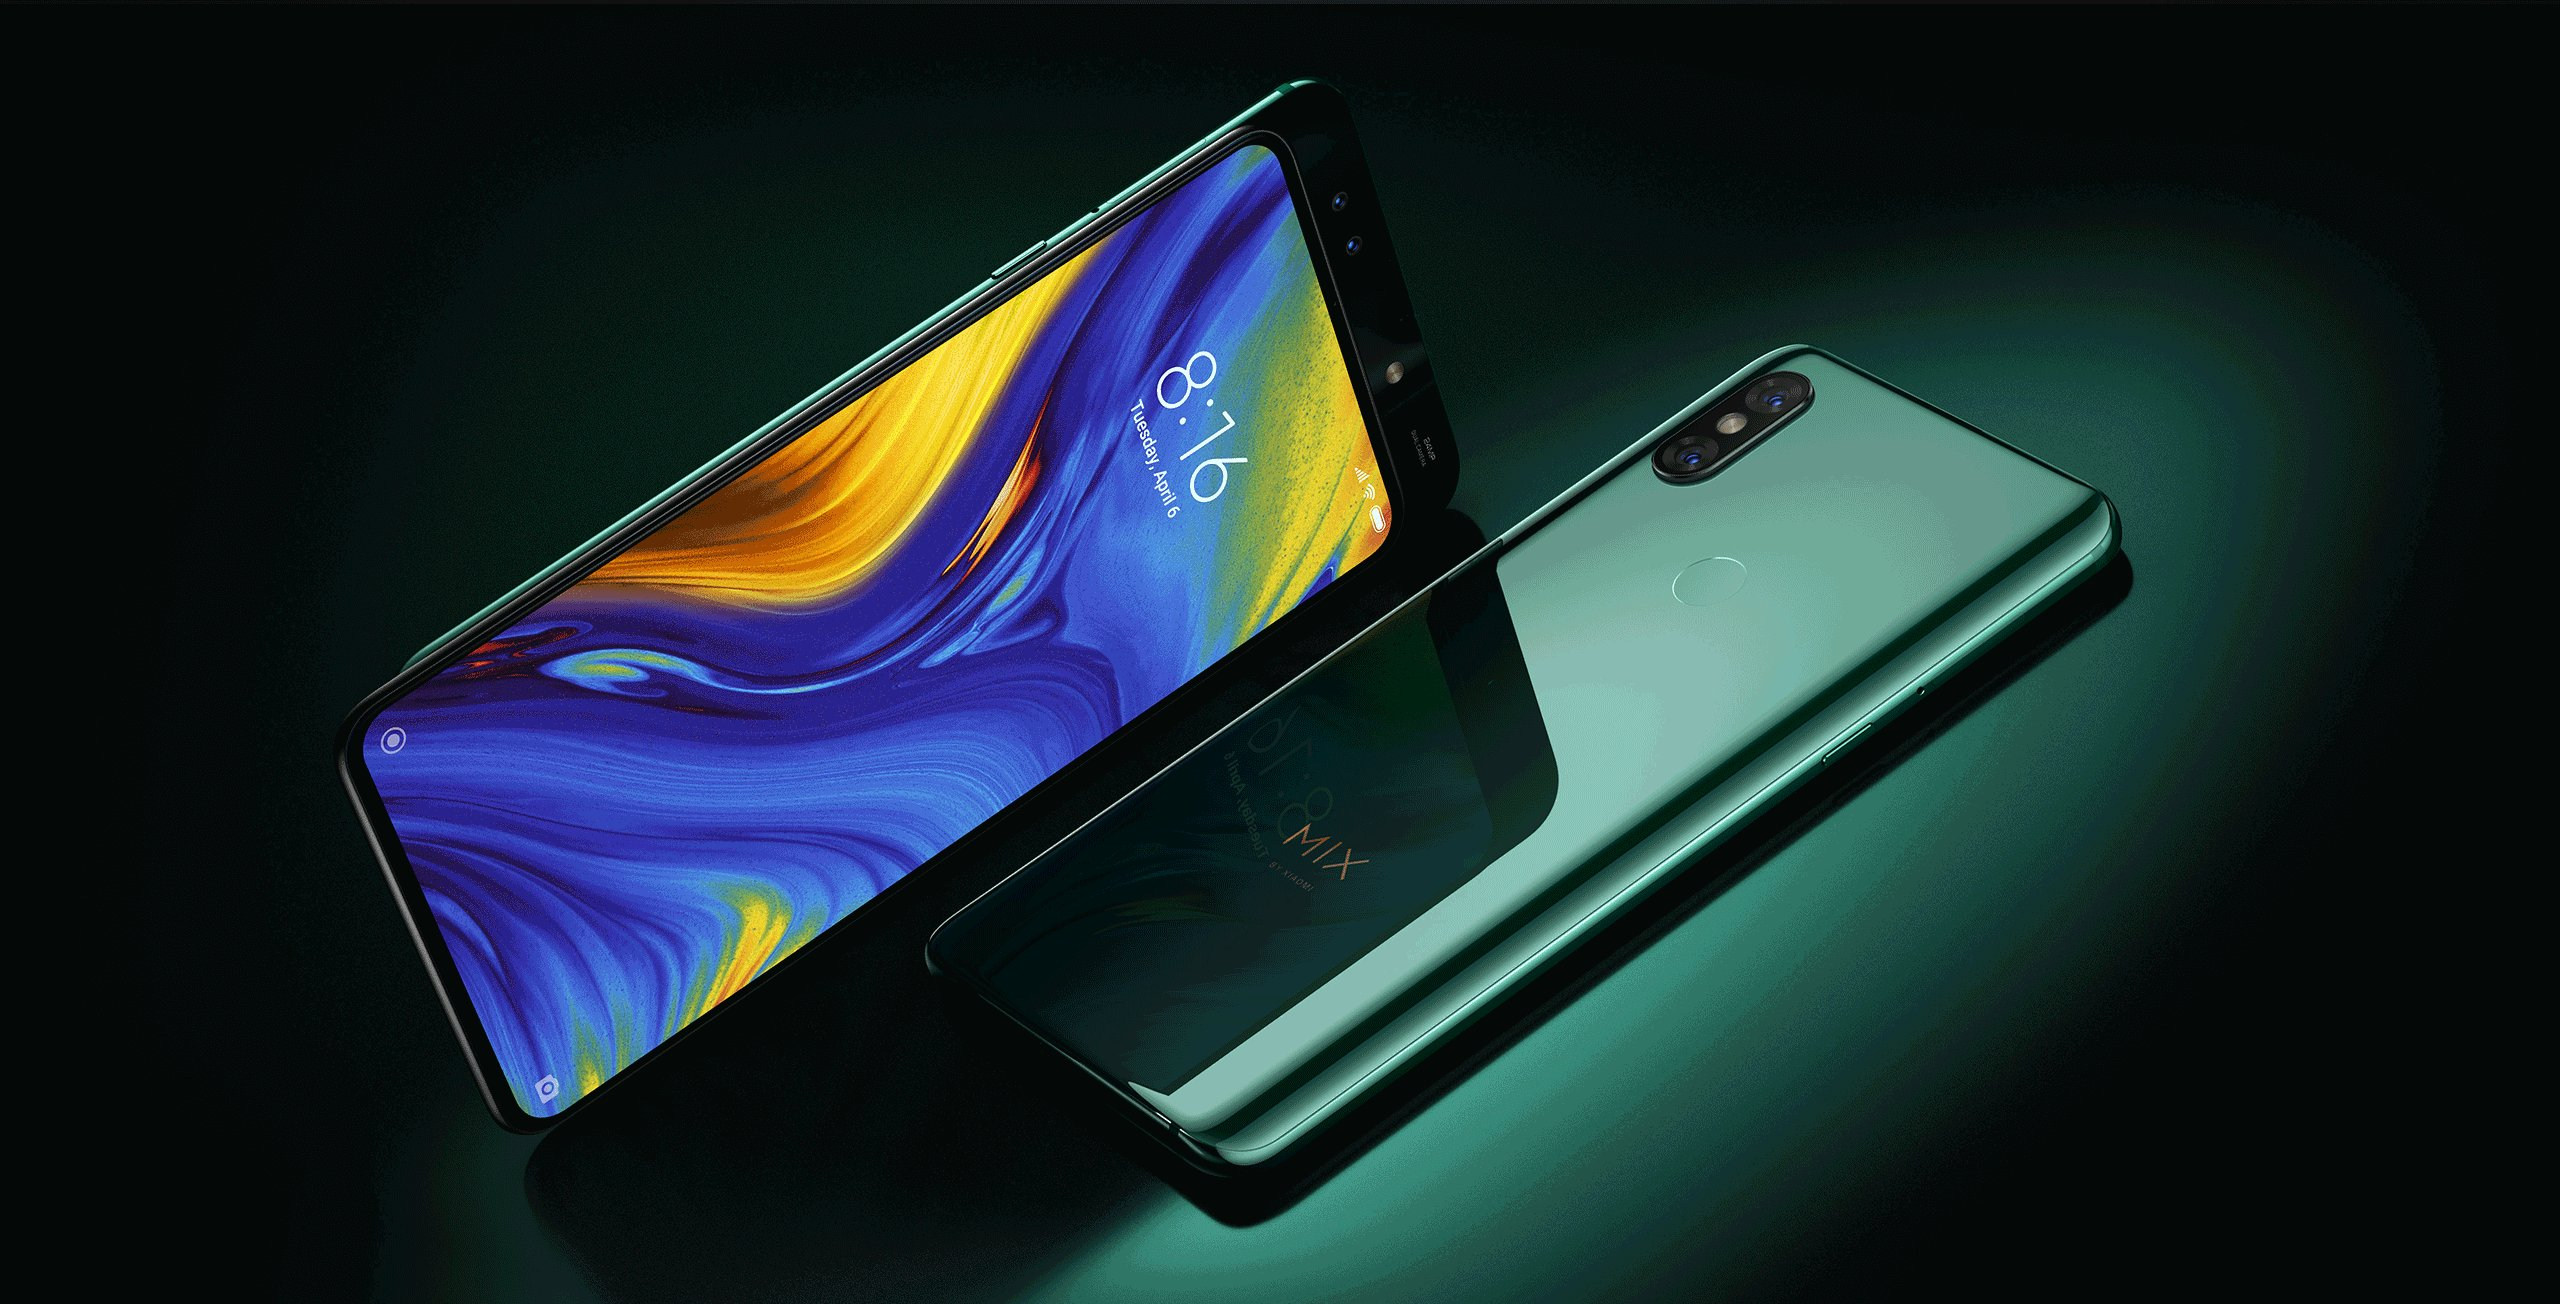 Mi MIX 3 okostelefon - 6+128GB, smaragdzöld - Global